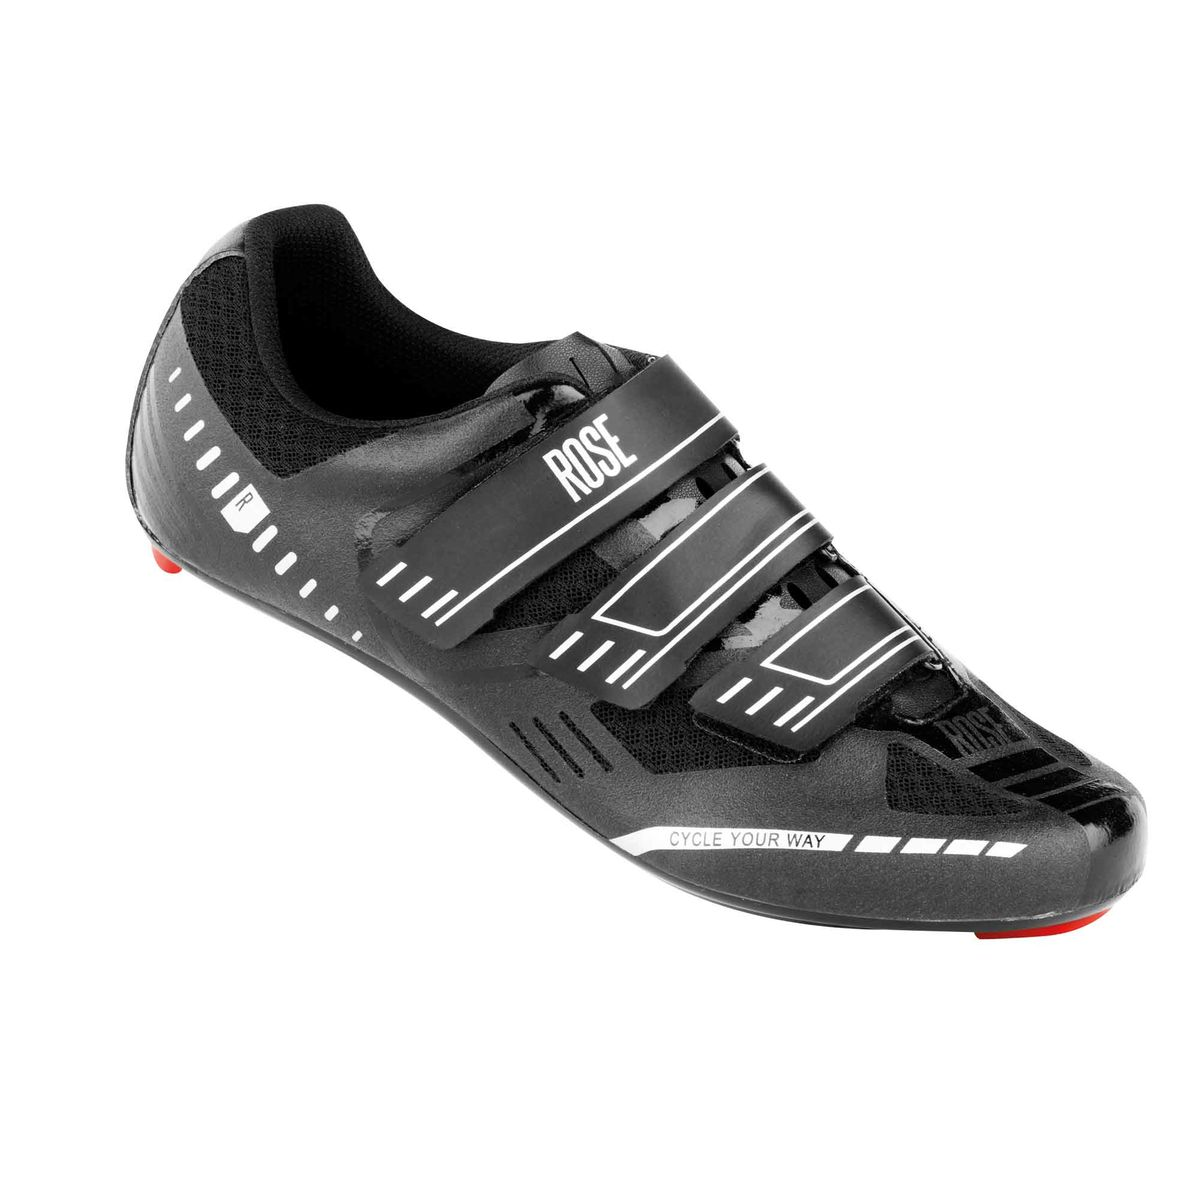 RRS 10 road shoes